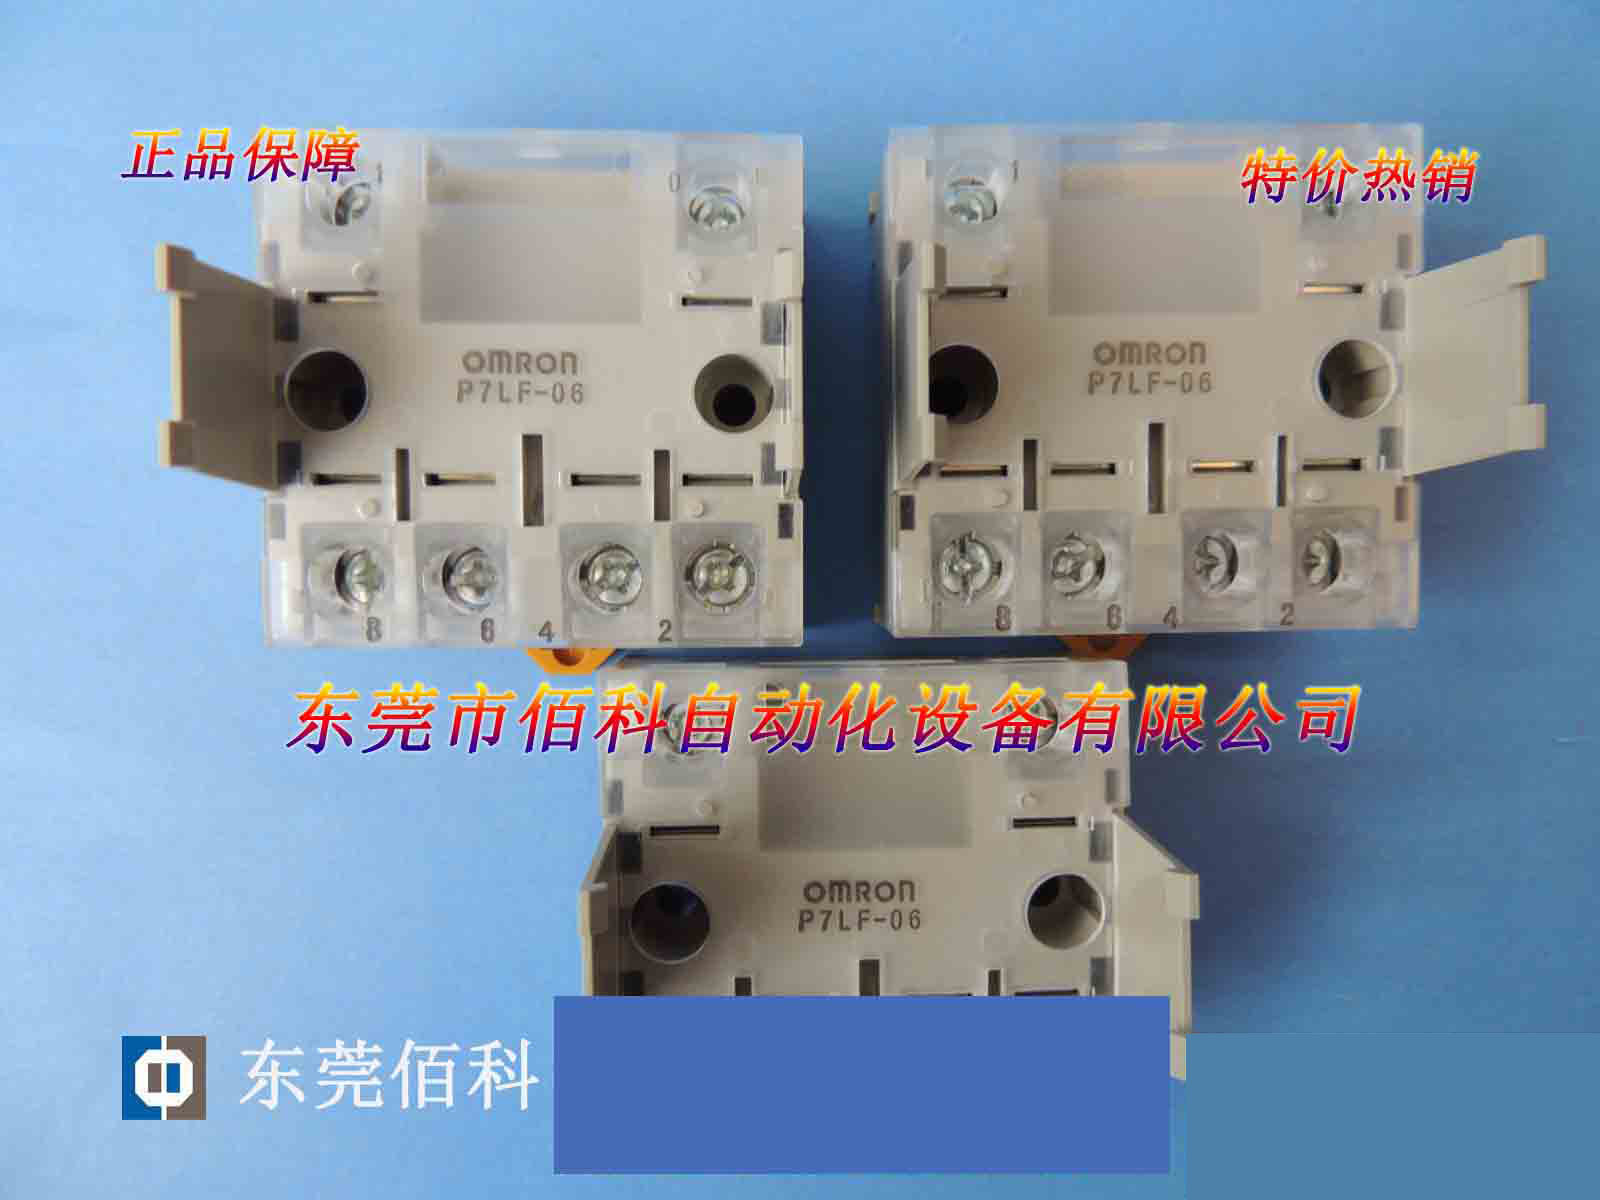 Special offer new original Omron base P7LF-06Special offer new original Omron base P7LF-06